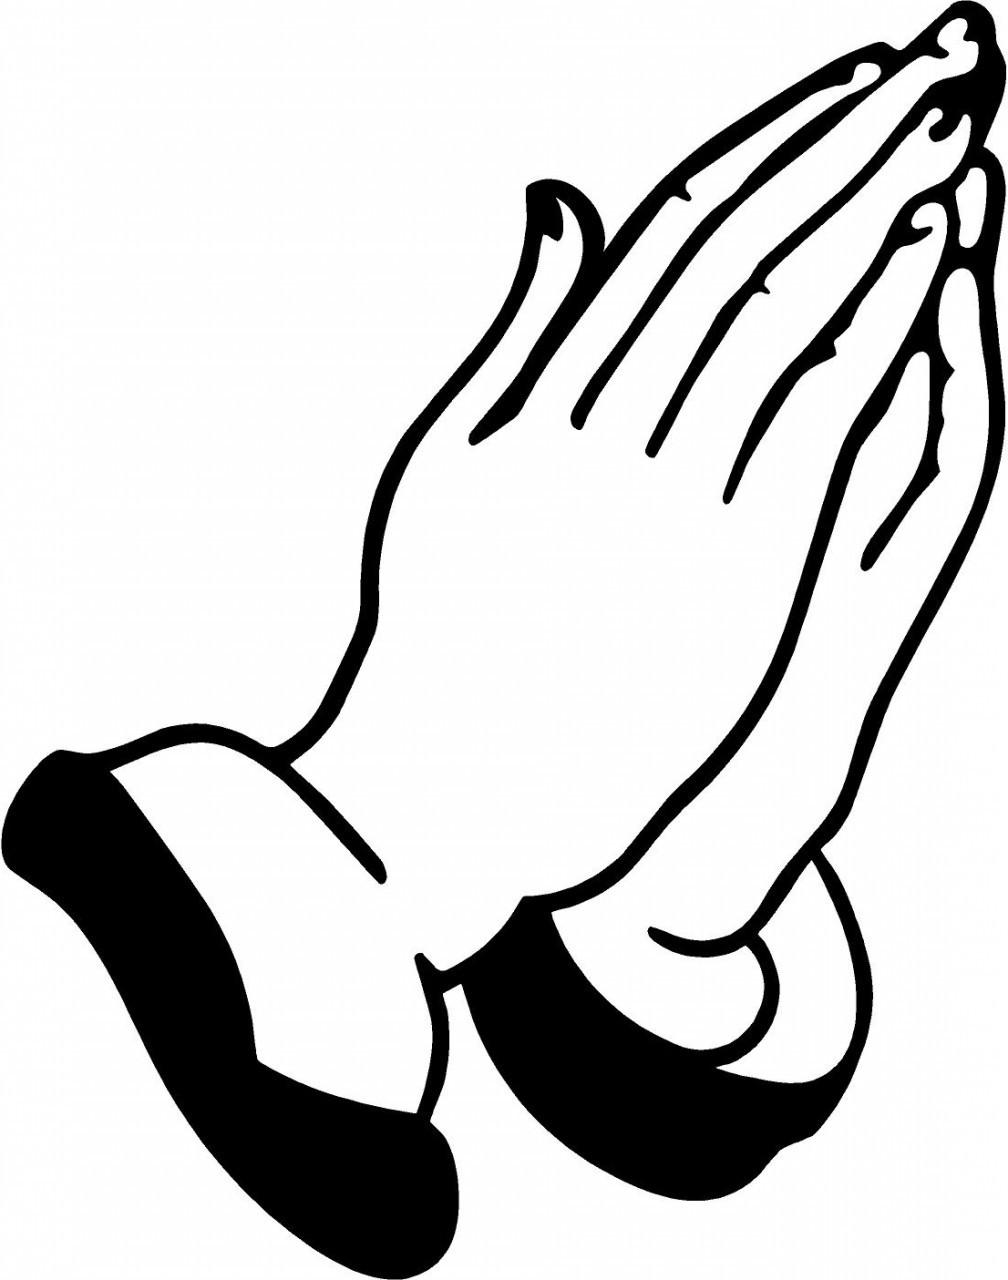 Praying Hands Images Free